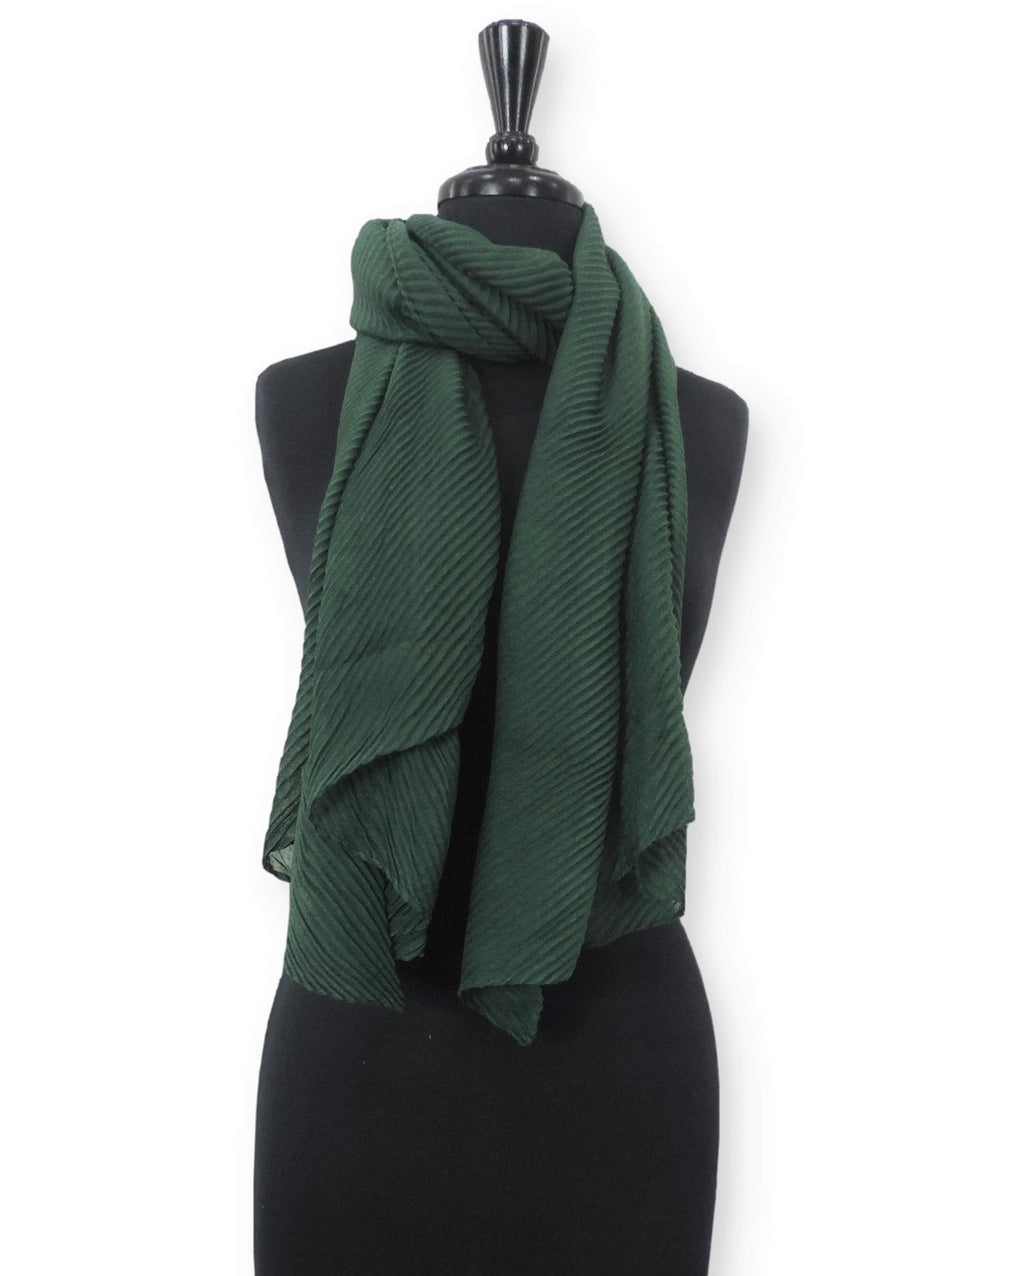 Peacock Cotton Wrinkle Scarf - Global Trendz Fashion®